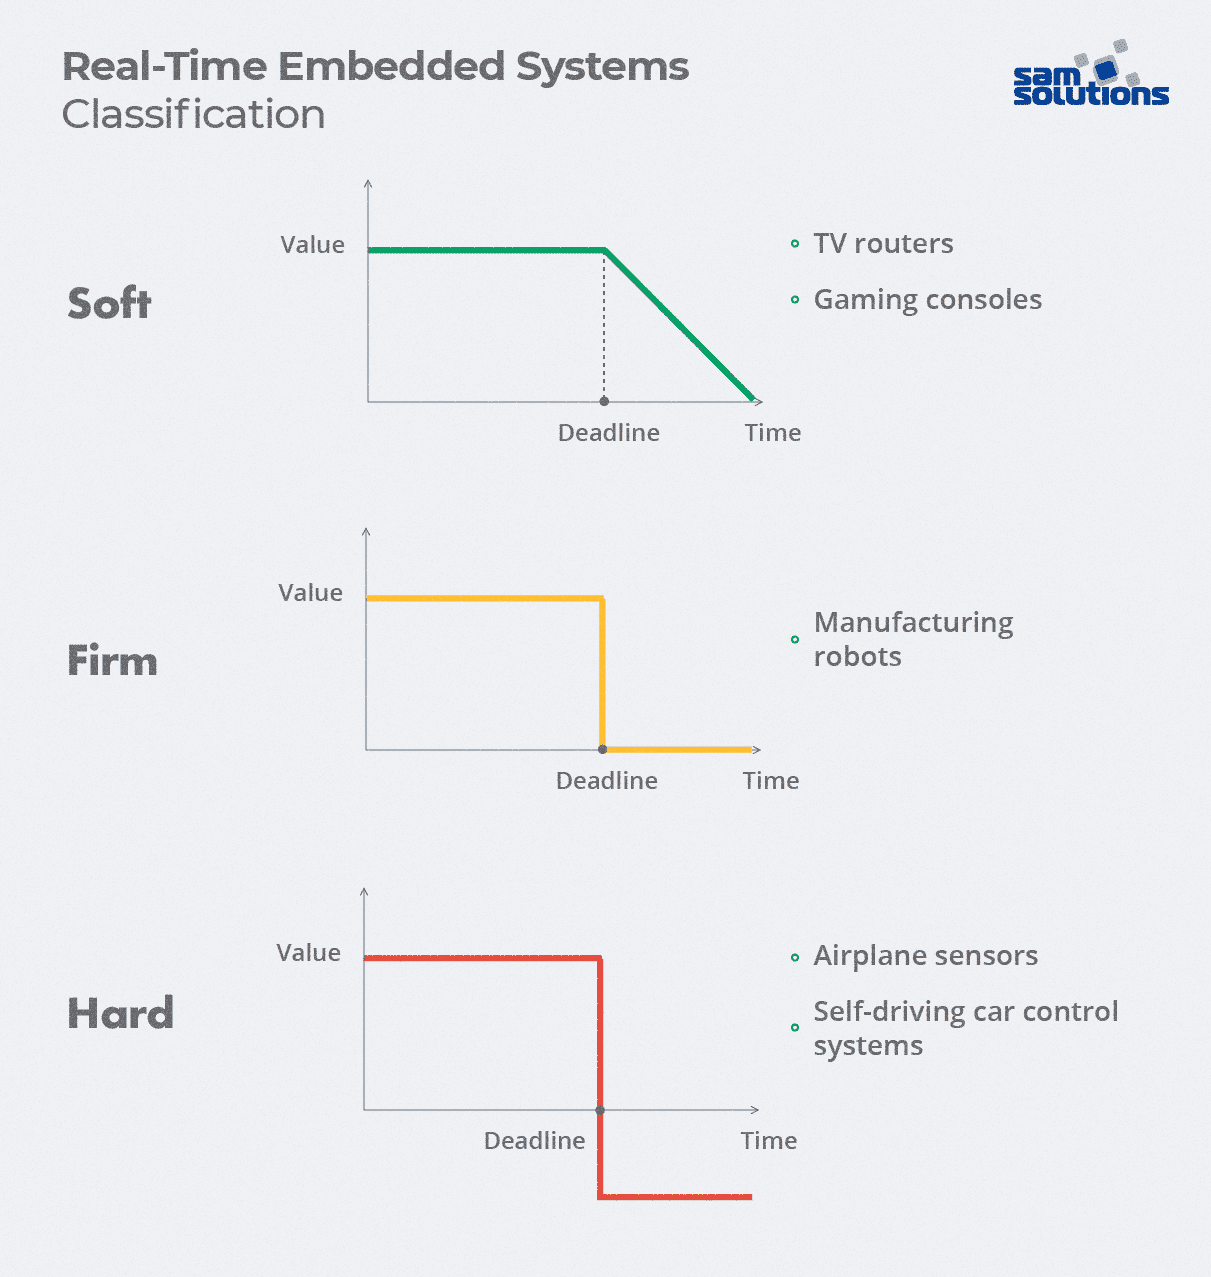 Real-time-embedded-system-categories